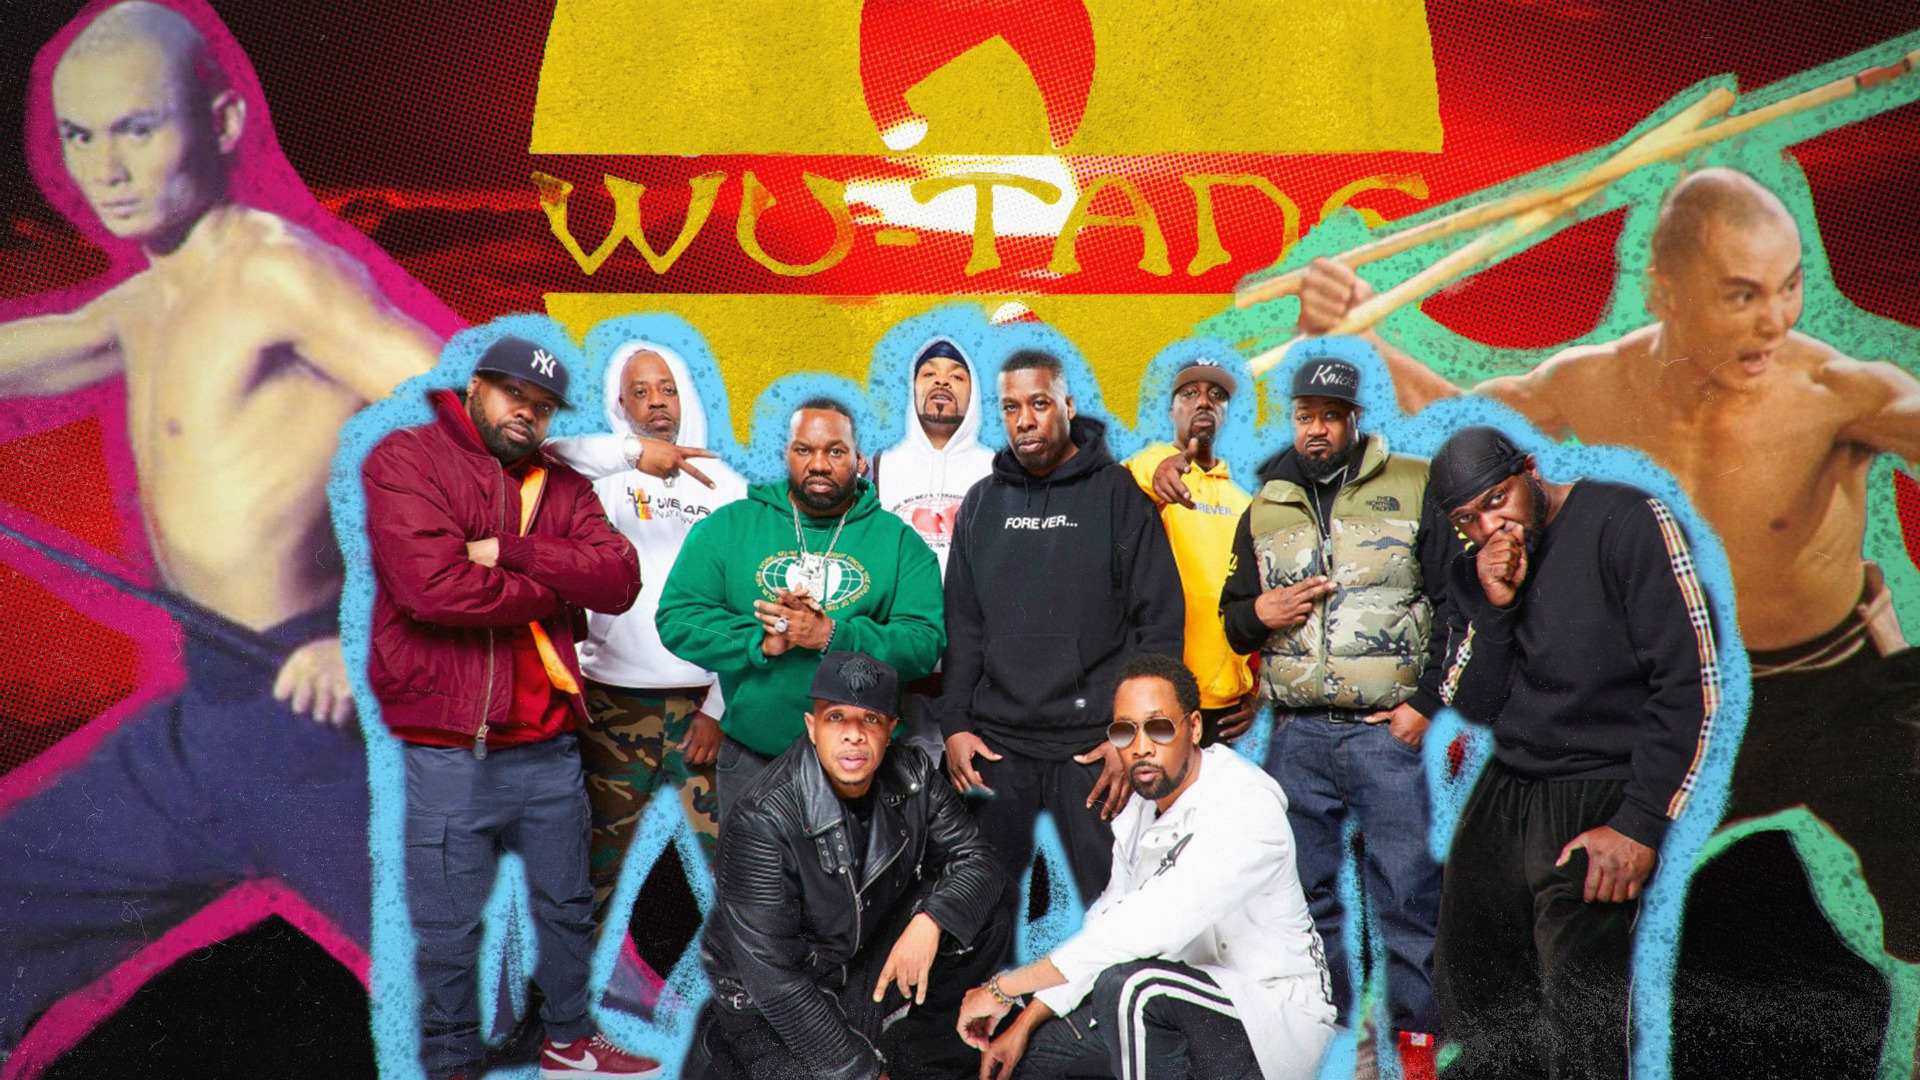 Wu-Tang Slang: An Abridged Glossary of Hip Hop's Most Iconic